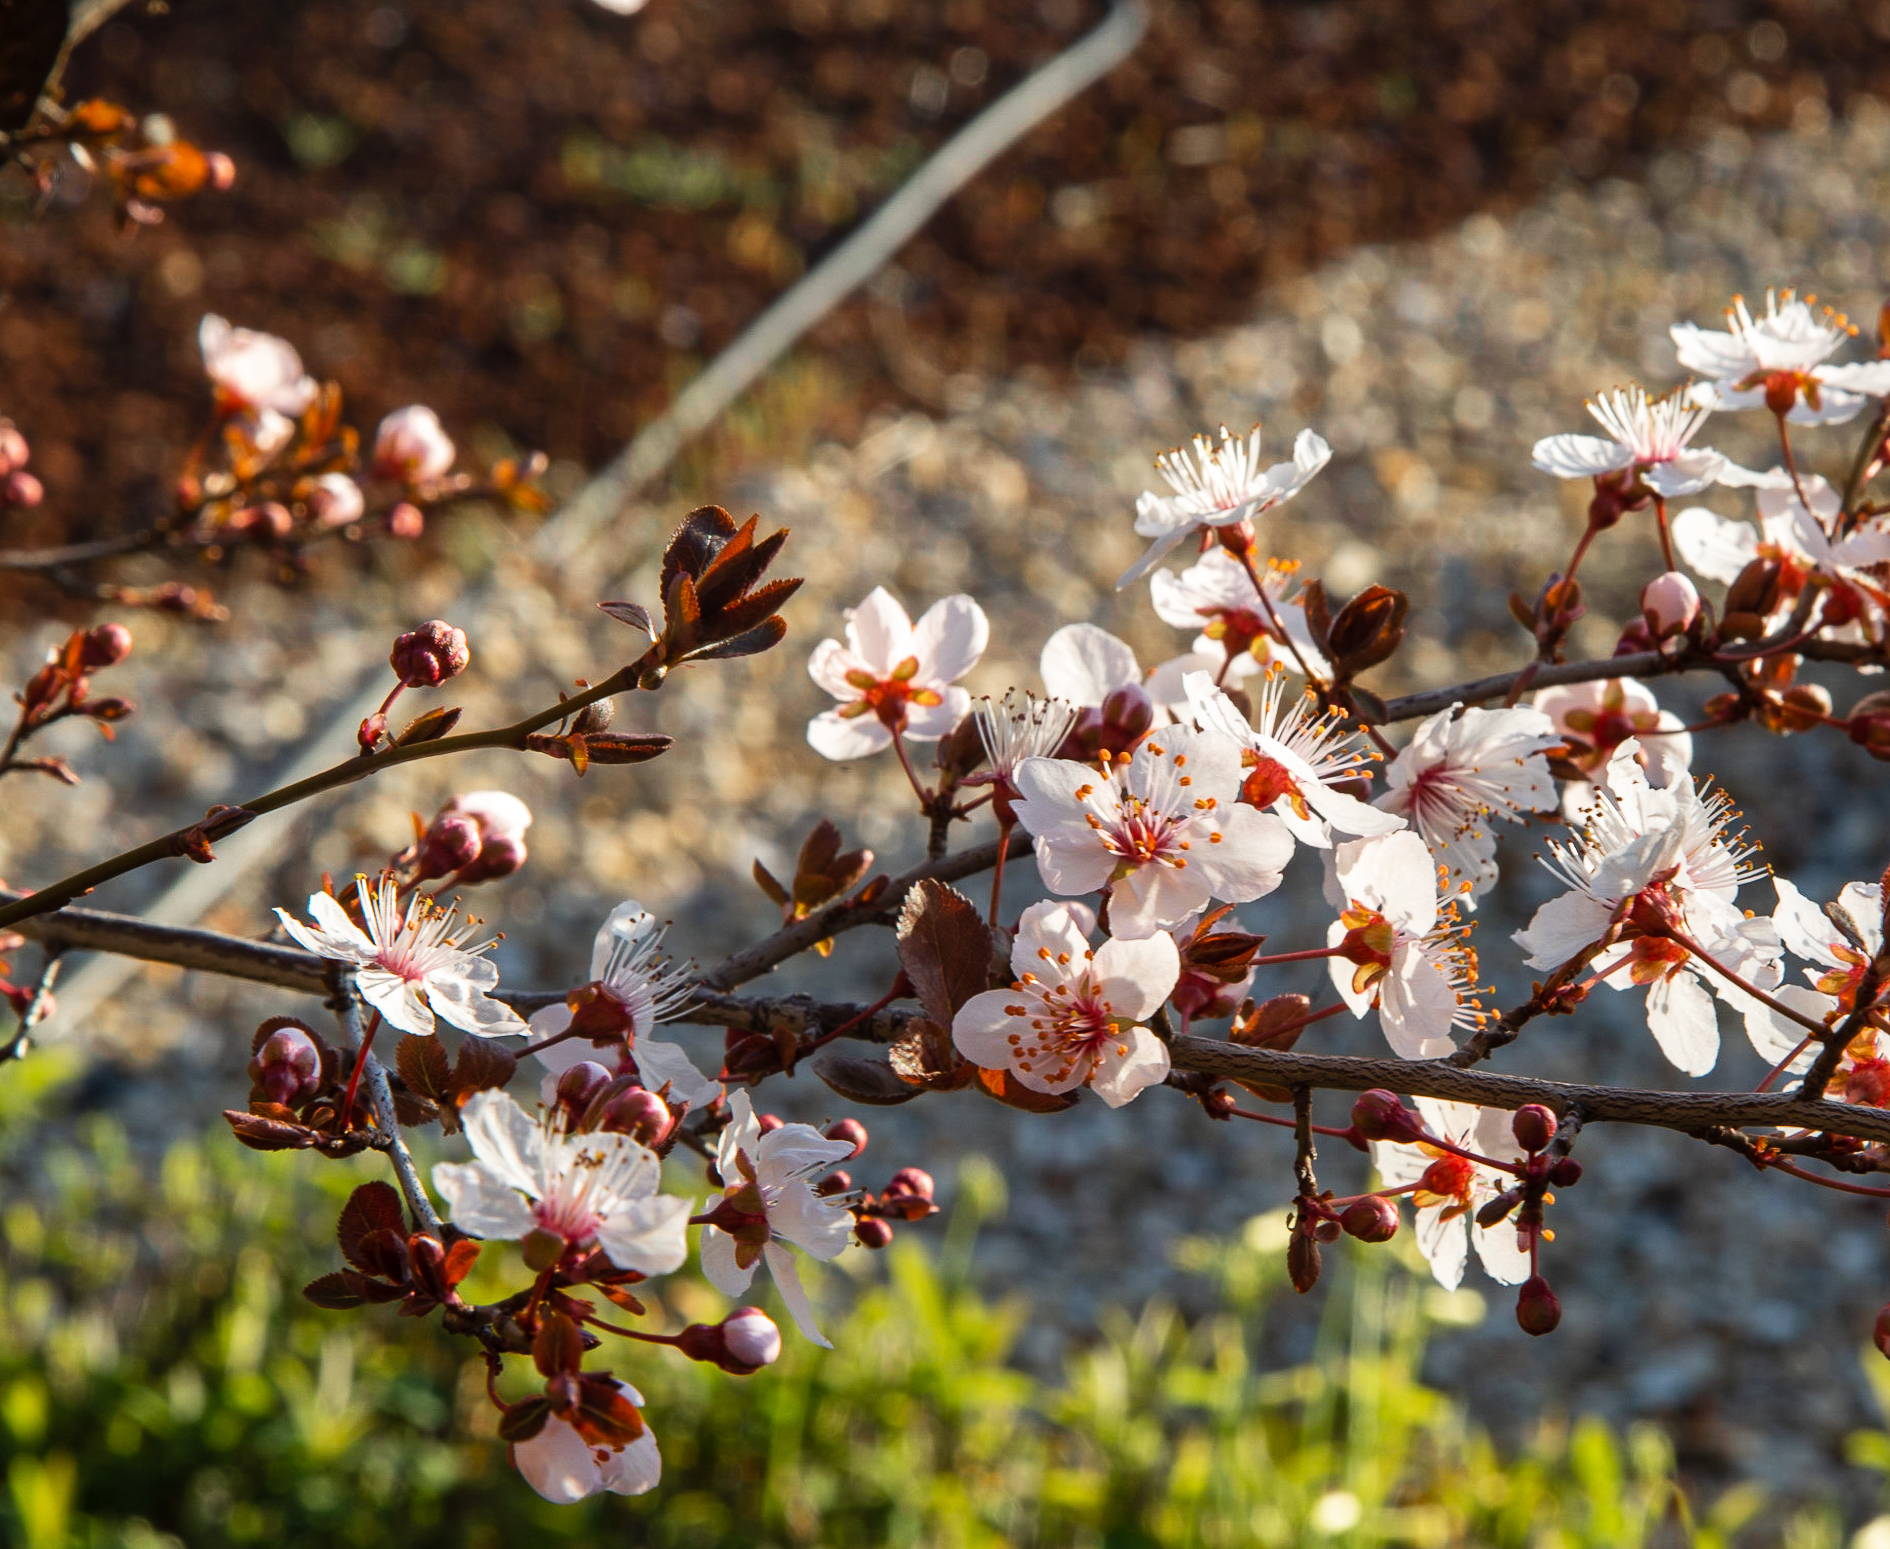 Blossoms of a Cherry or Plum